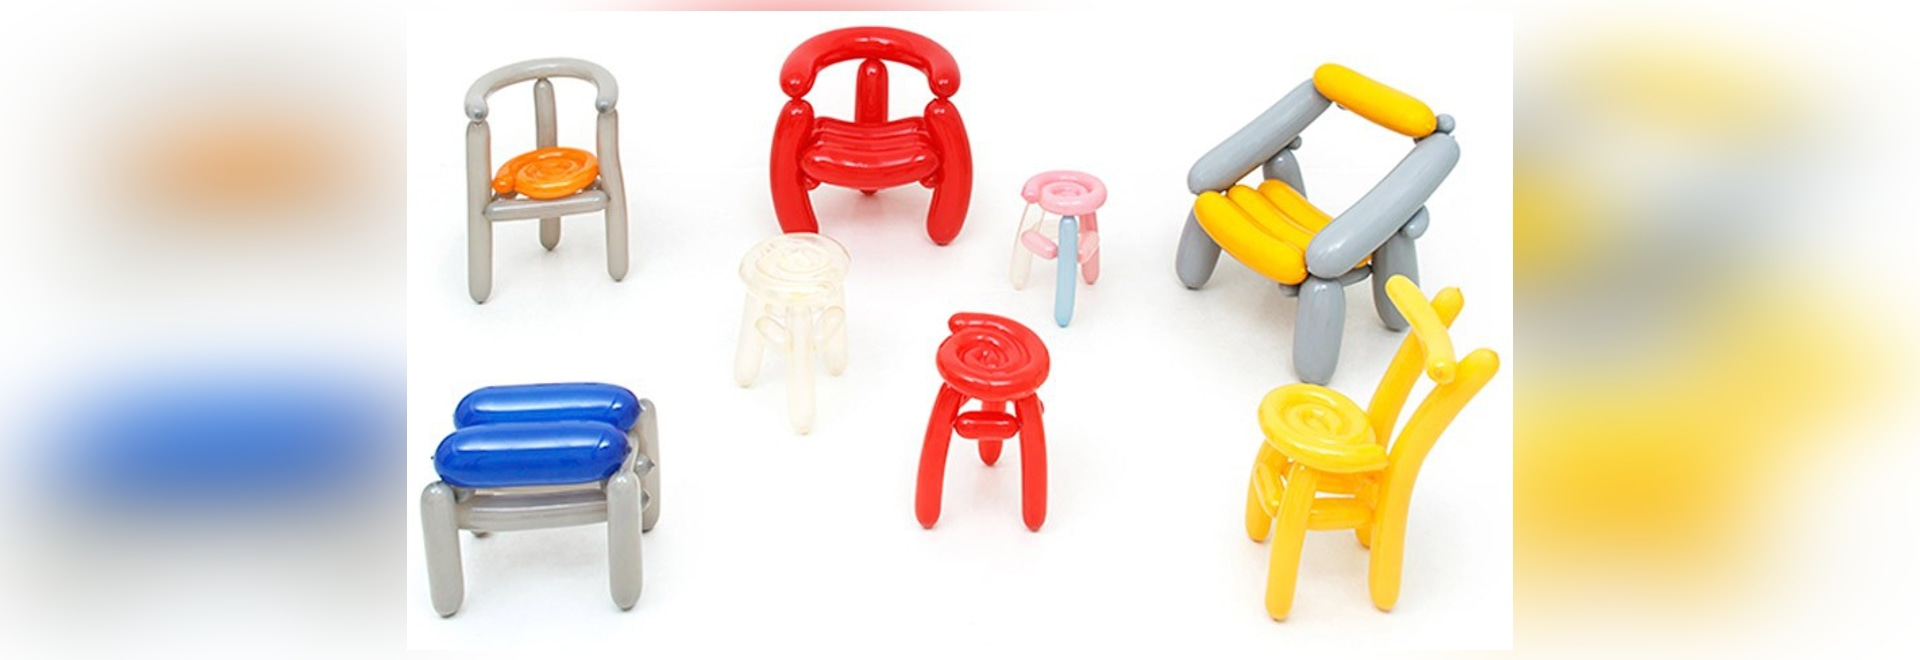 seungjin yang designs blowing chairs made from party balloons